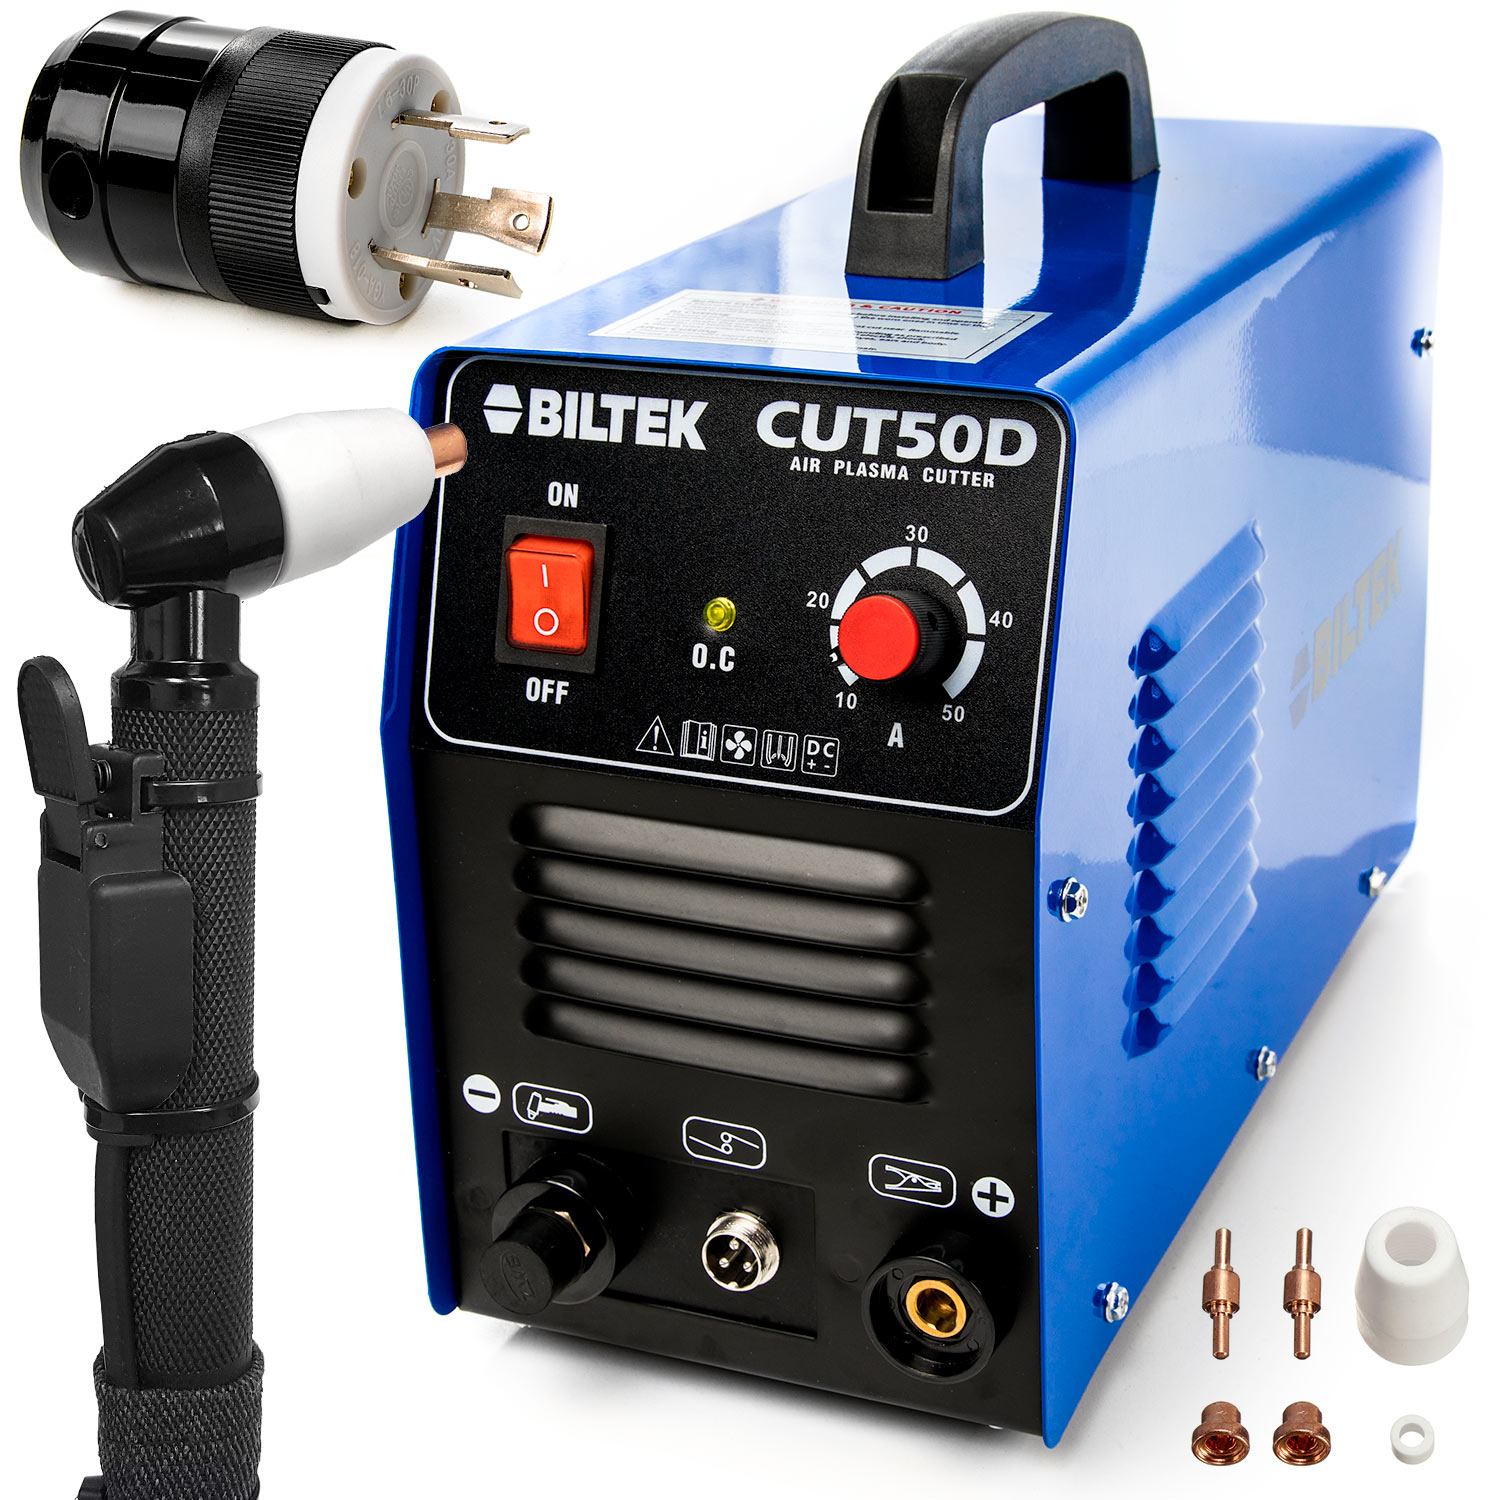 "Biltek 50Amp Air Plasma Cutter, 1/2"" Inch Cut 110V/220V Input CUT50D DC Inverter Dual Voltage with Pre-Installed 110V US Plug + 220V L6-30P Plug, Portable & Easy Quick Setup Metal Cutter"